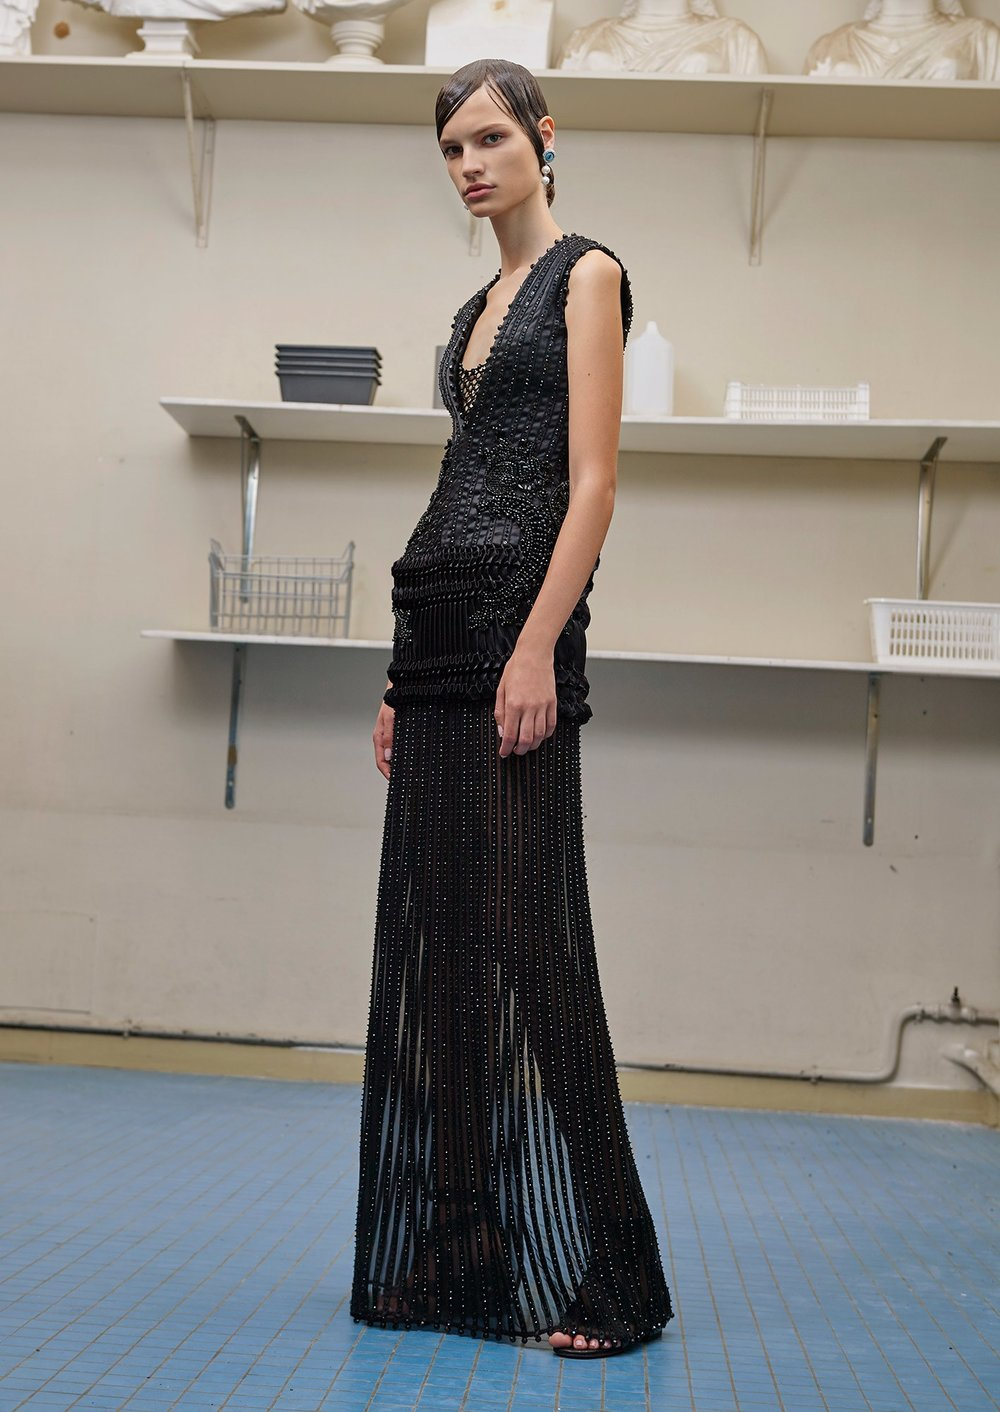 08-givenchy-couture-2017.jpg